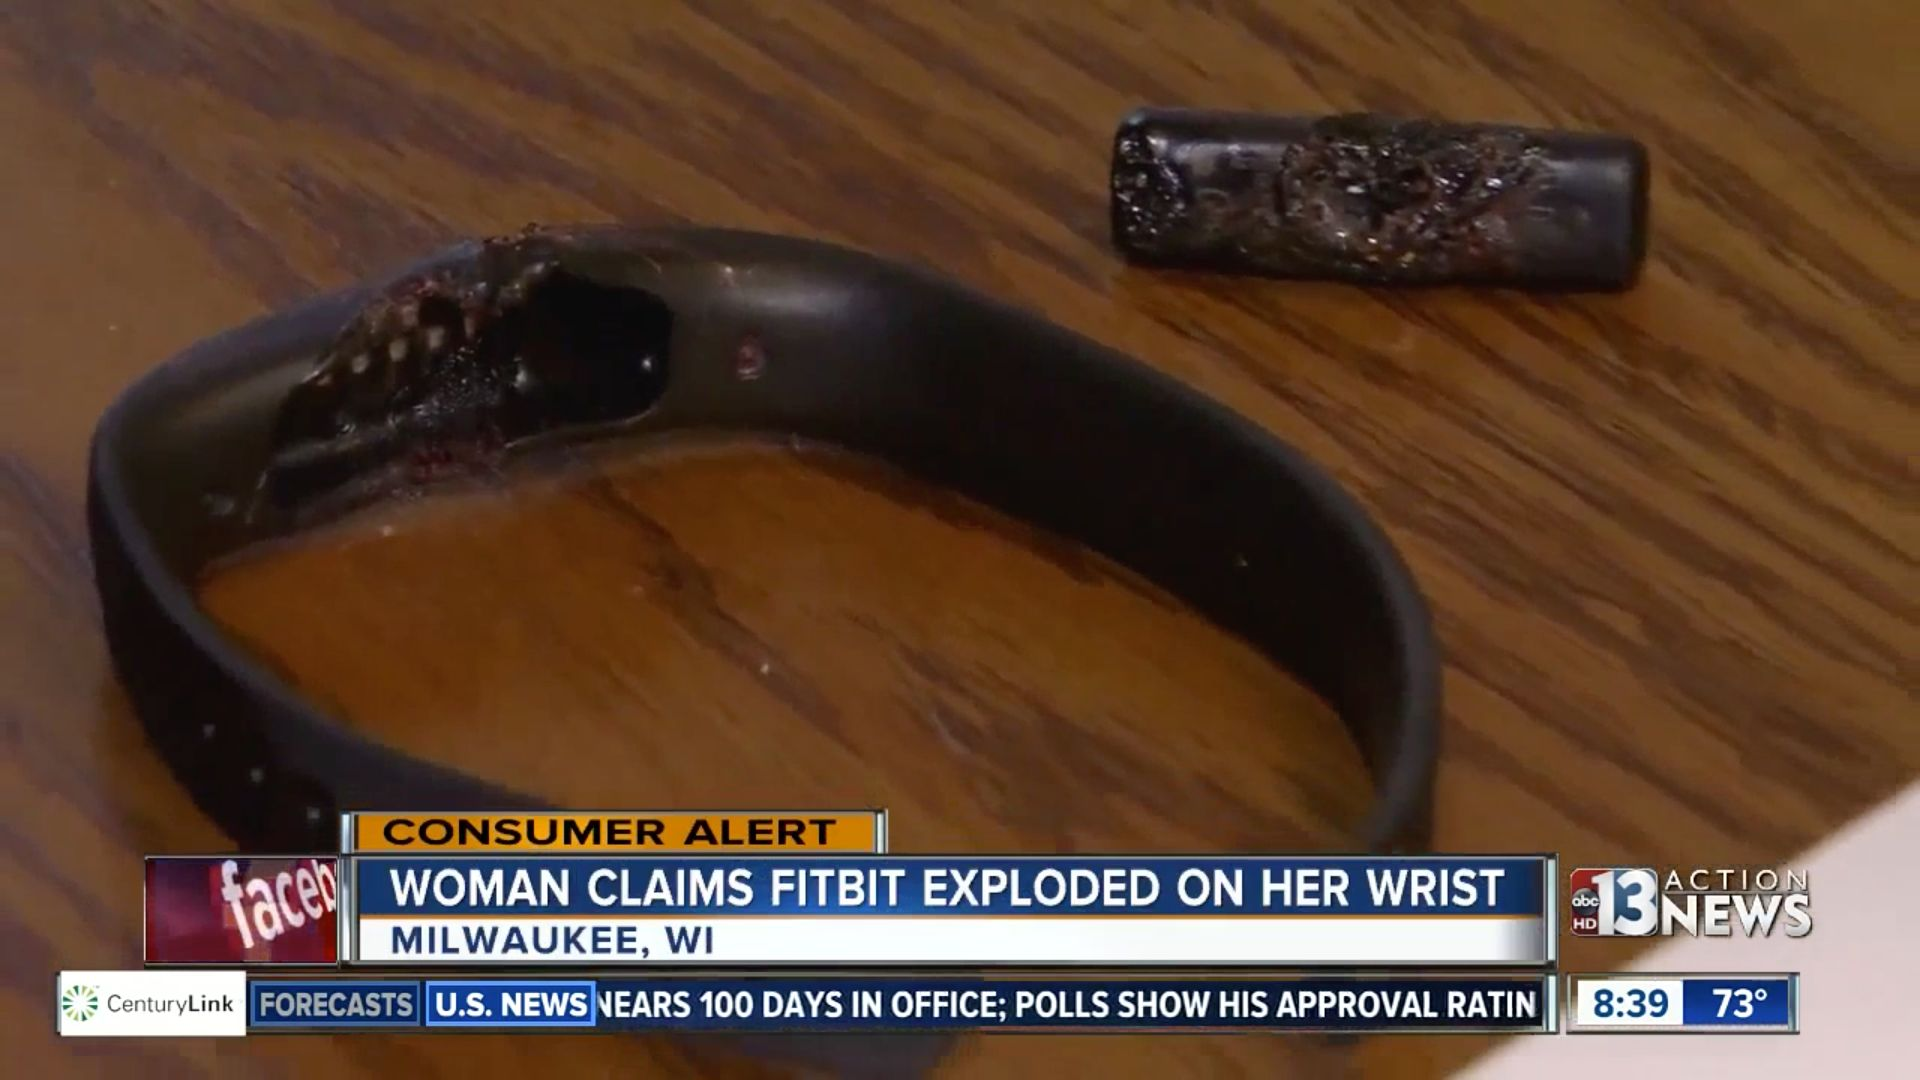 Mitchell said her Flex 2 device exploded on her wrist last week